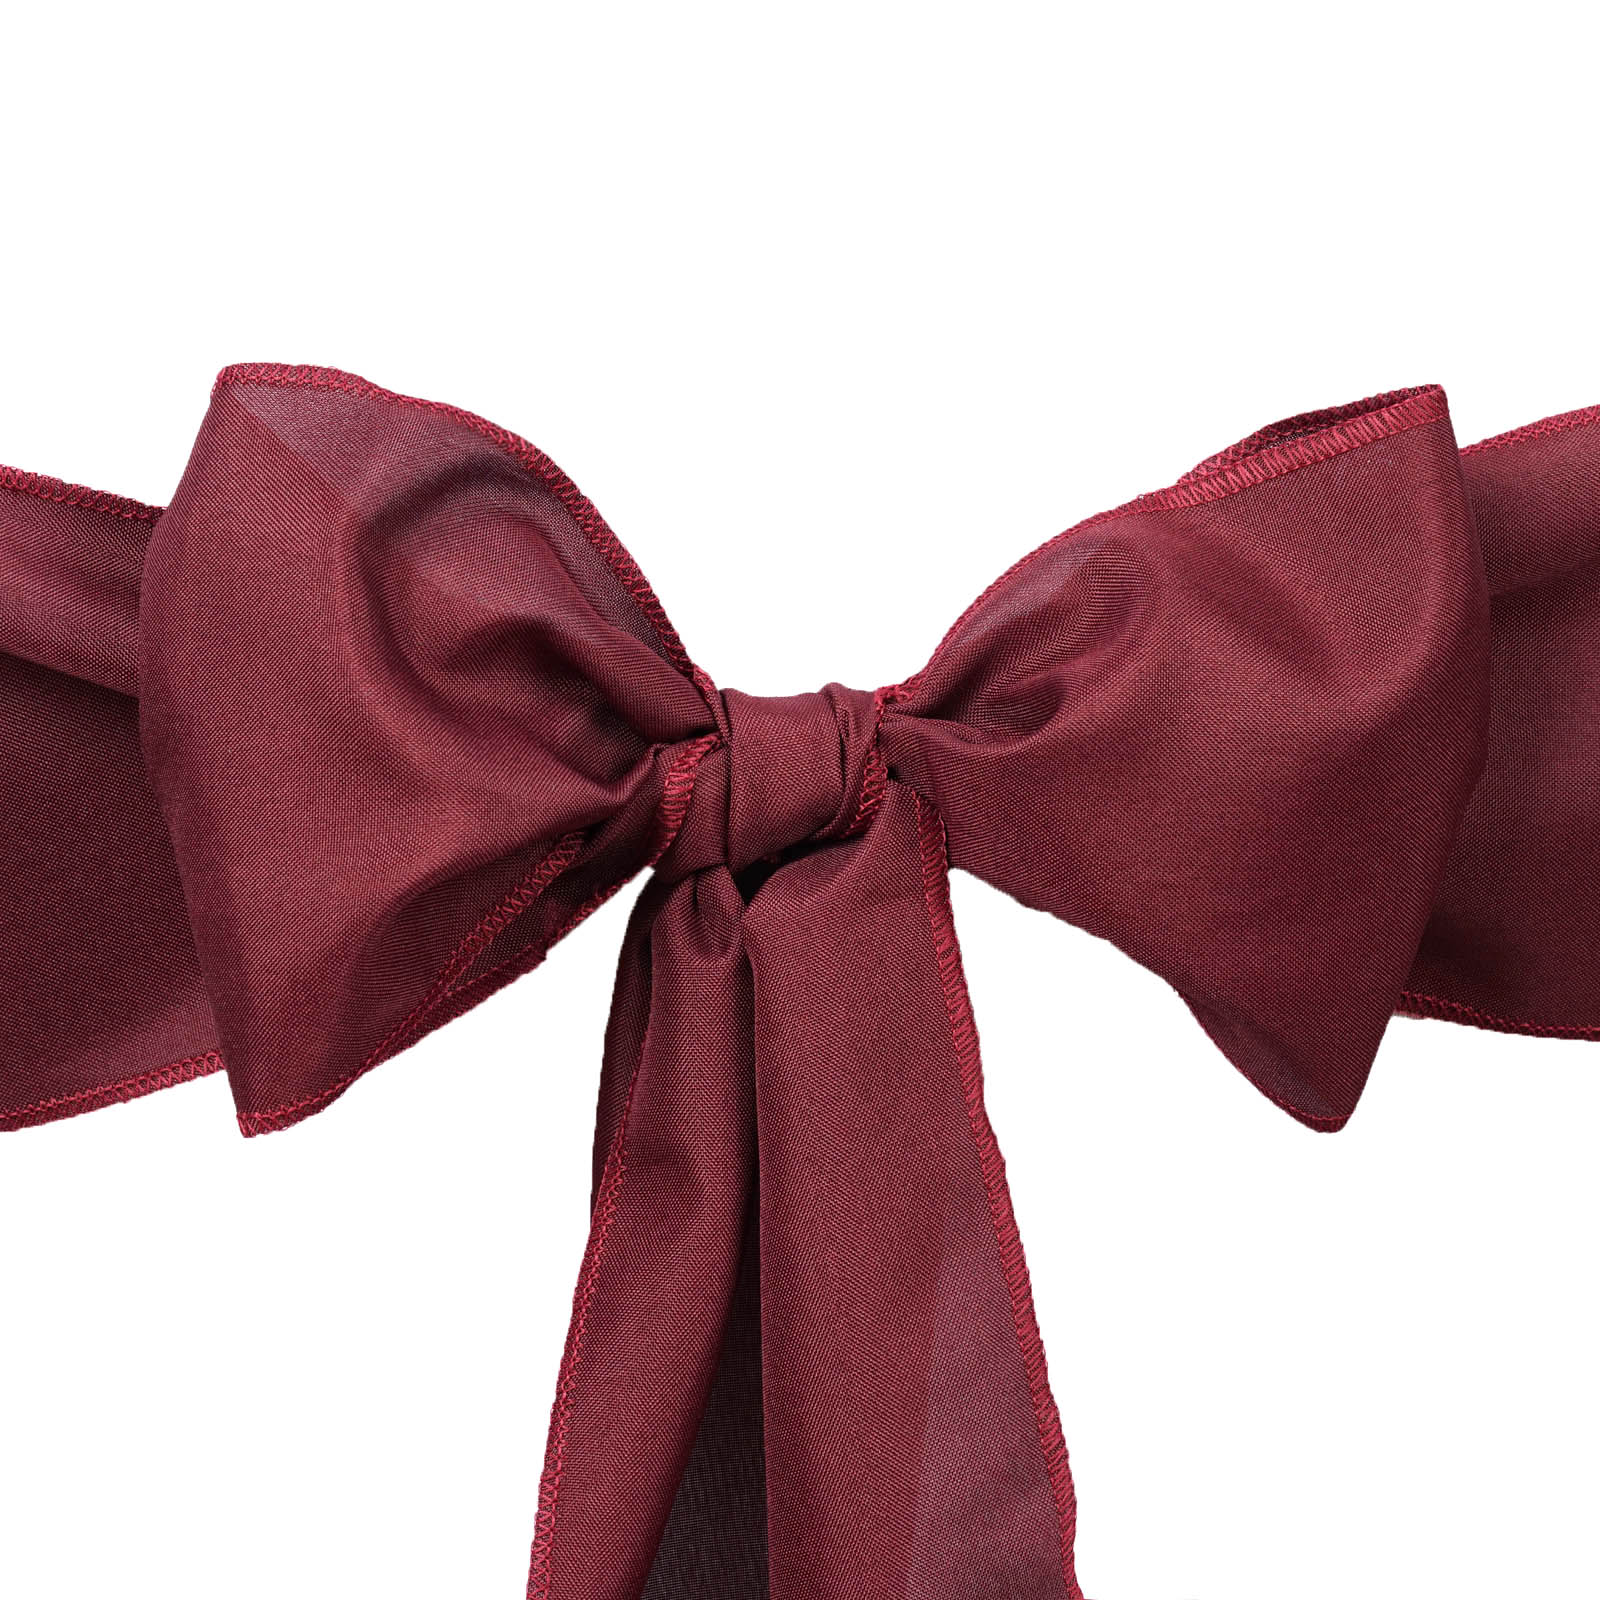 50 Polyester CHAIR SASHES Ties Bows Wedding Party Ceremony Reception Decorations